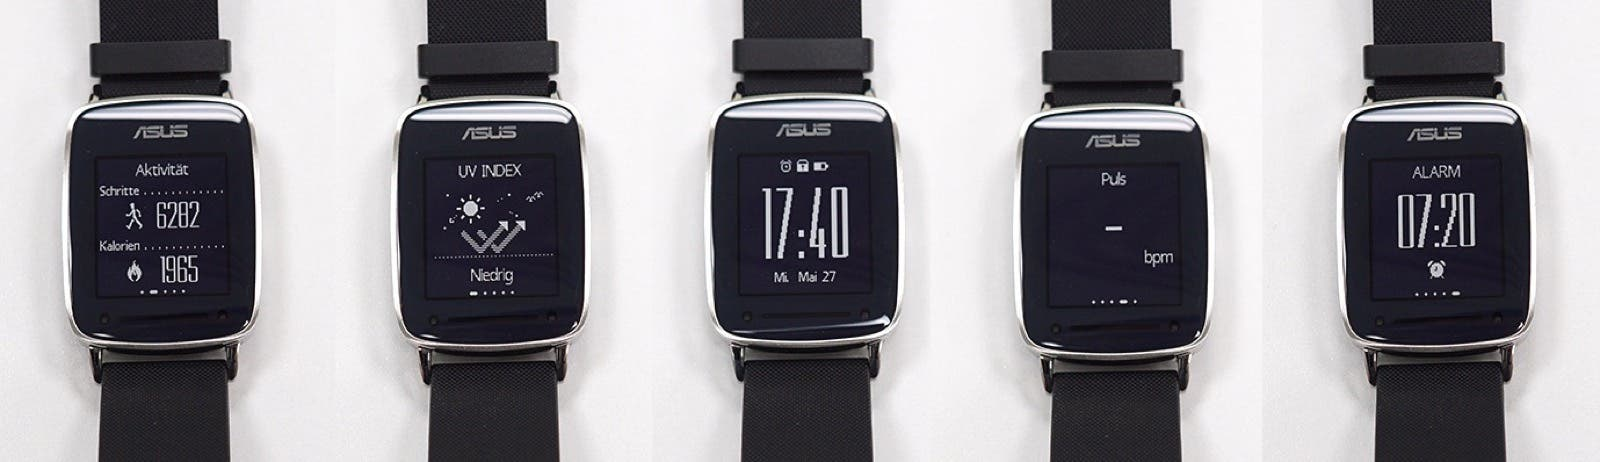 ASUS Vivowatch homescreens